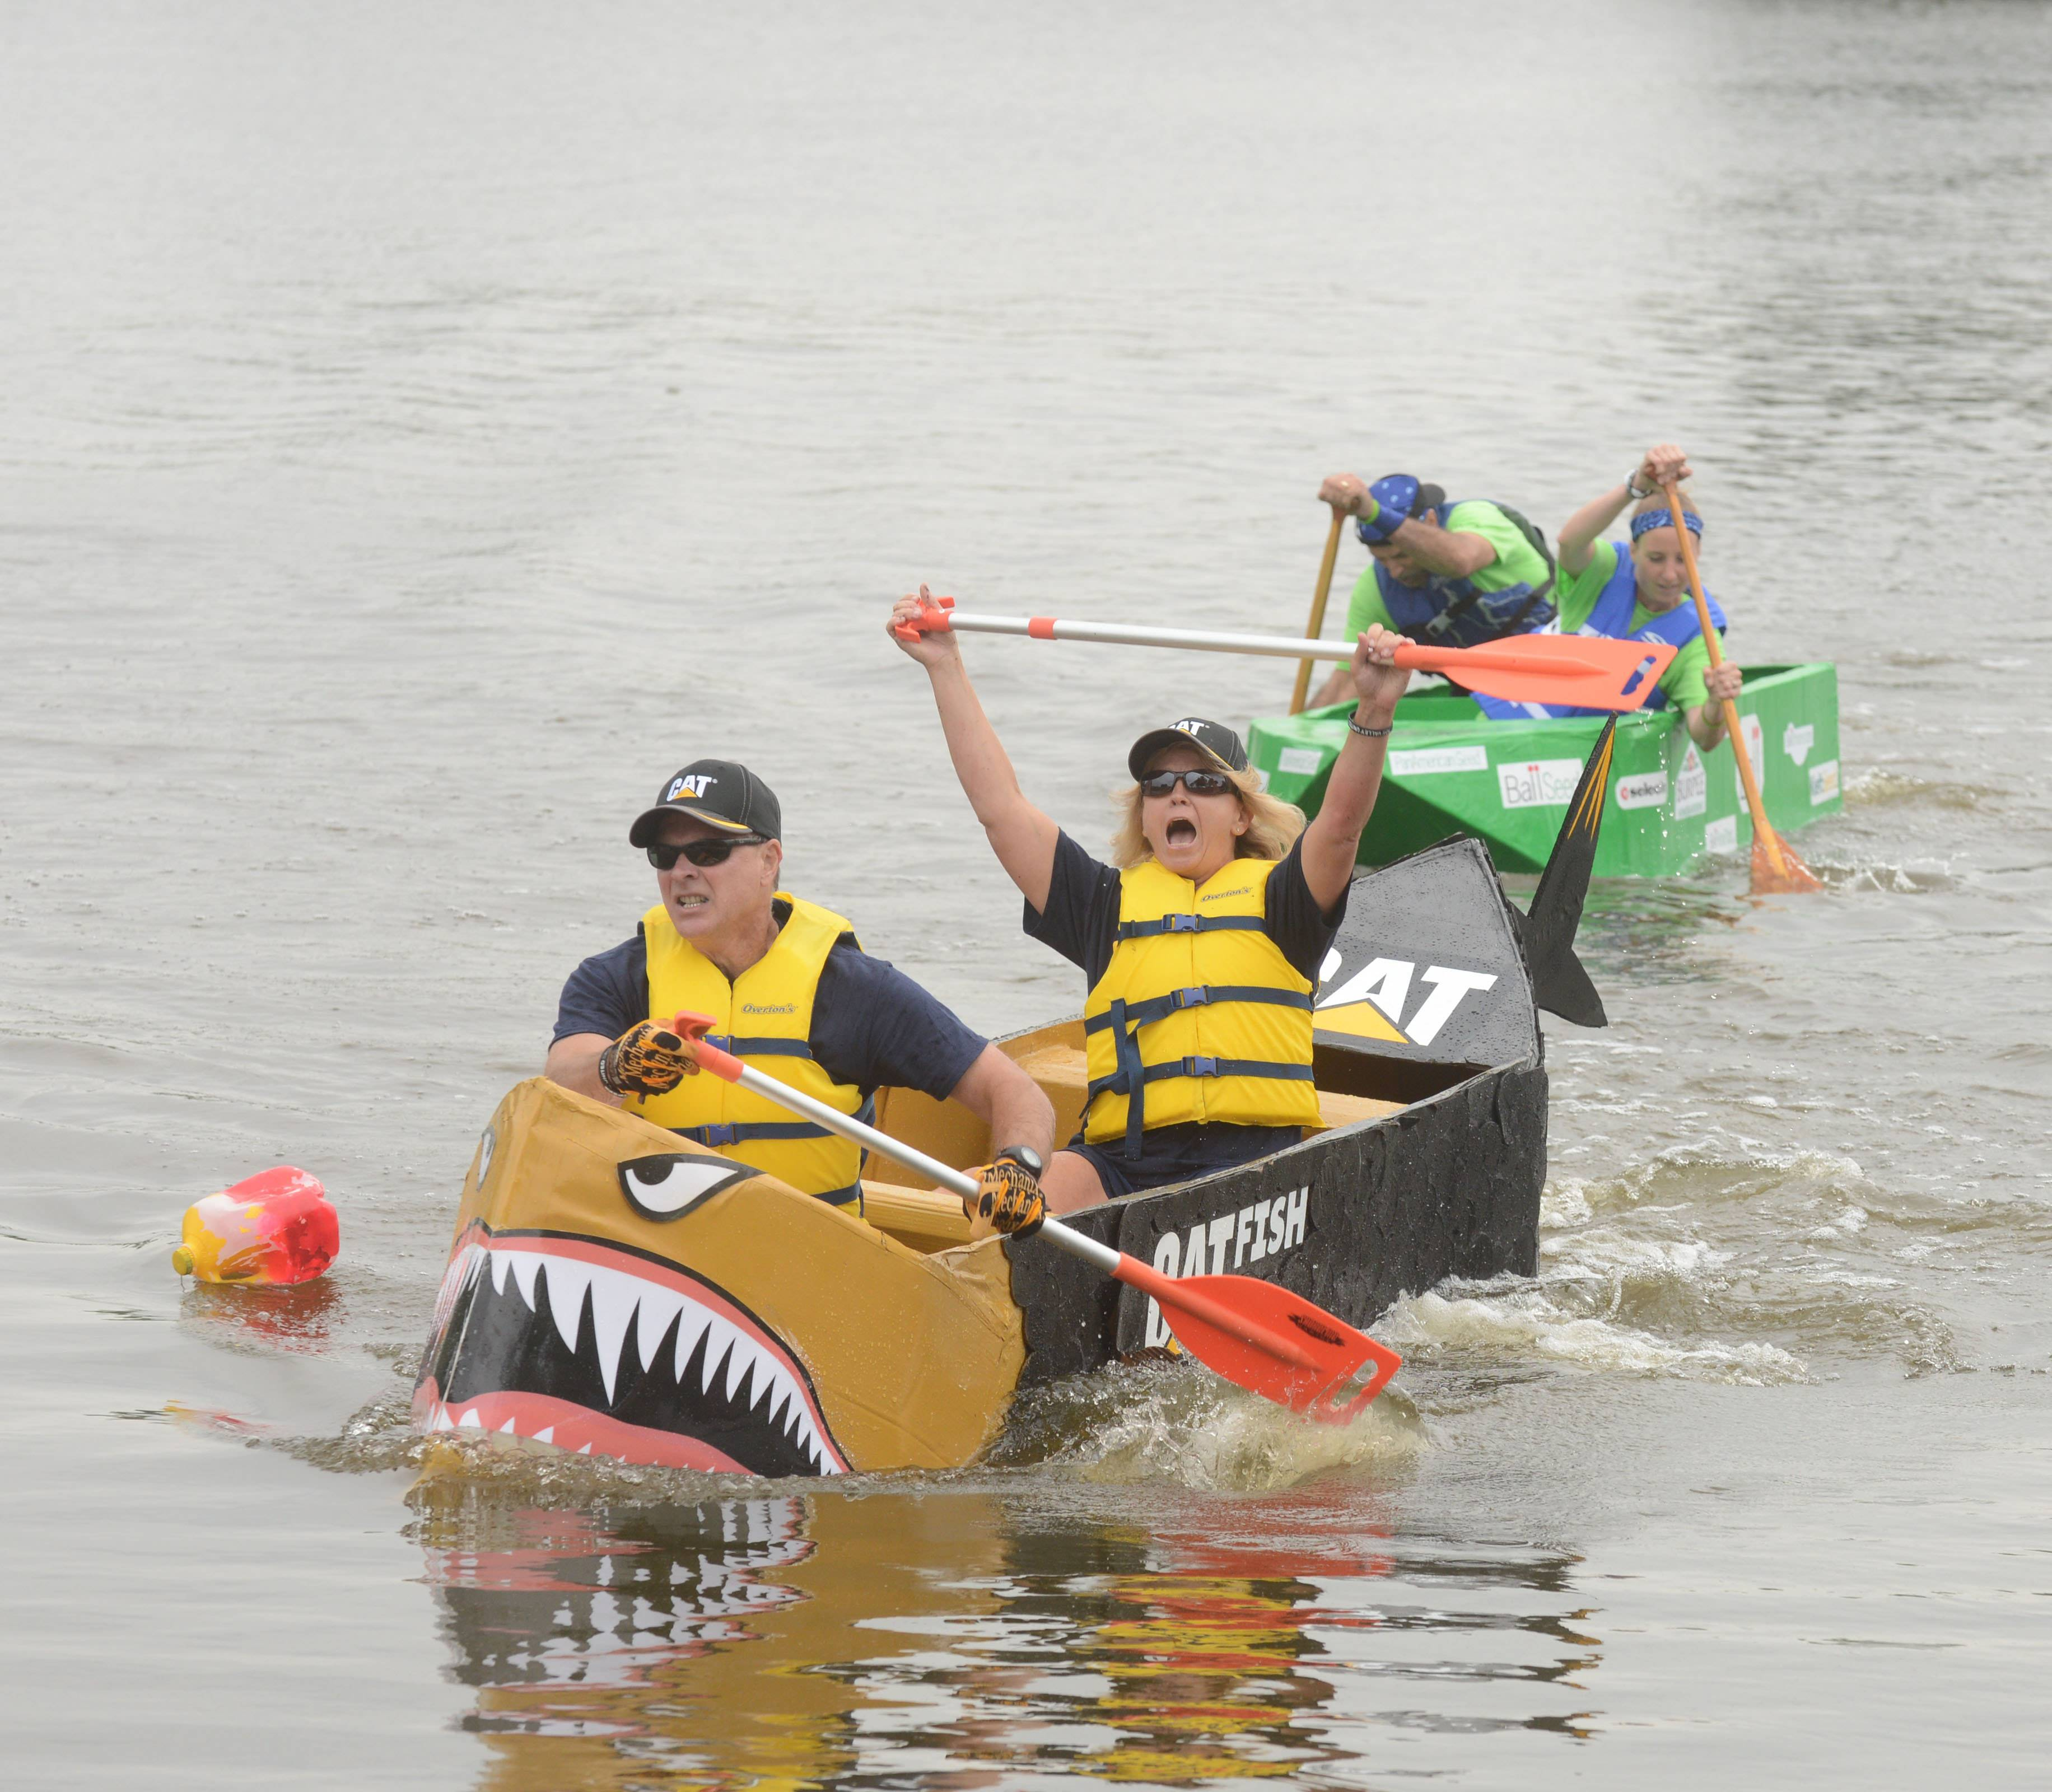 Sign up by Monday, Aug. 14 for the Fox Valley United Way's 15th annual Cardboard Boat Race on Mastodon Lake at Phillips Park in Aurora.